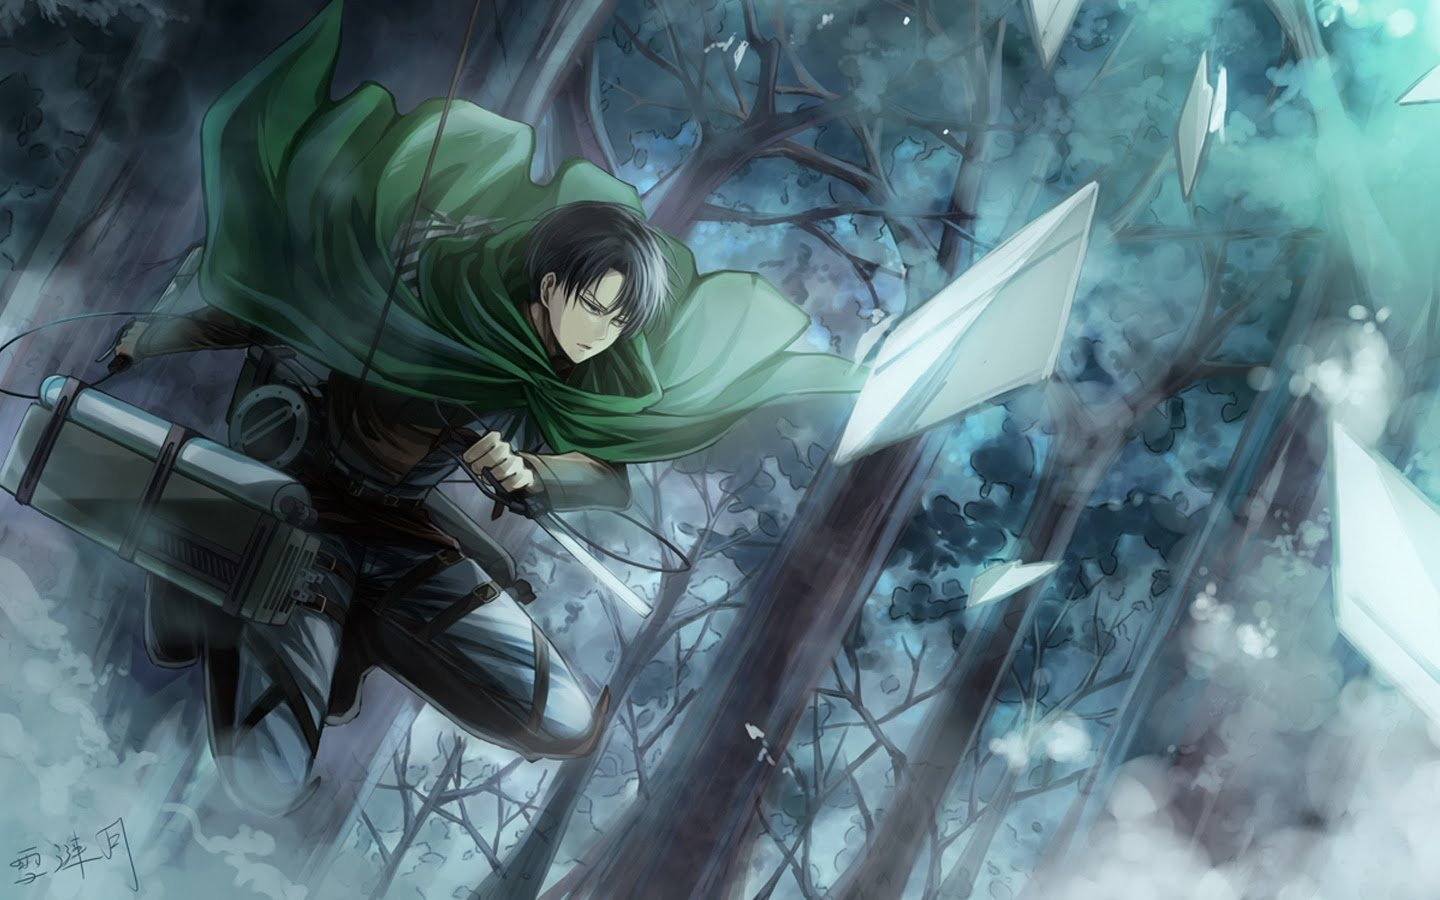 Levi Attack on Titan 9t Wallpaper HD 1440x900